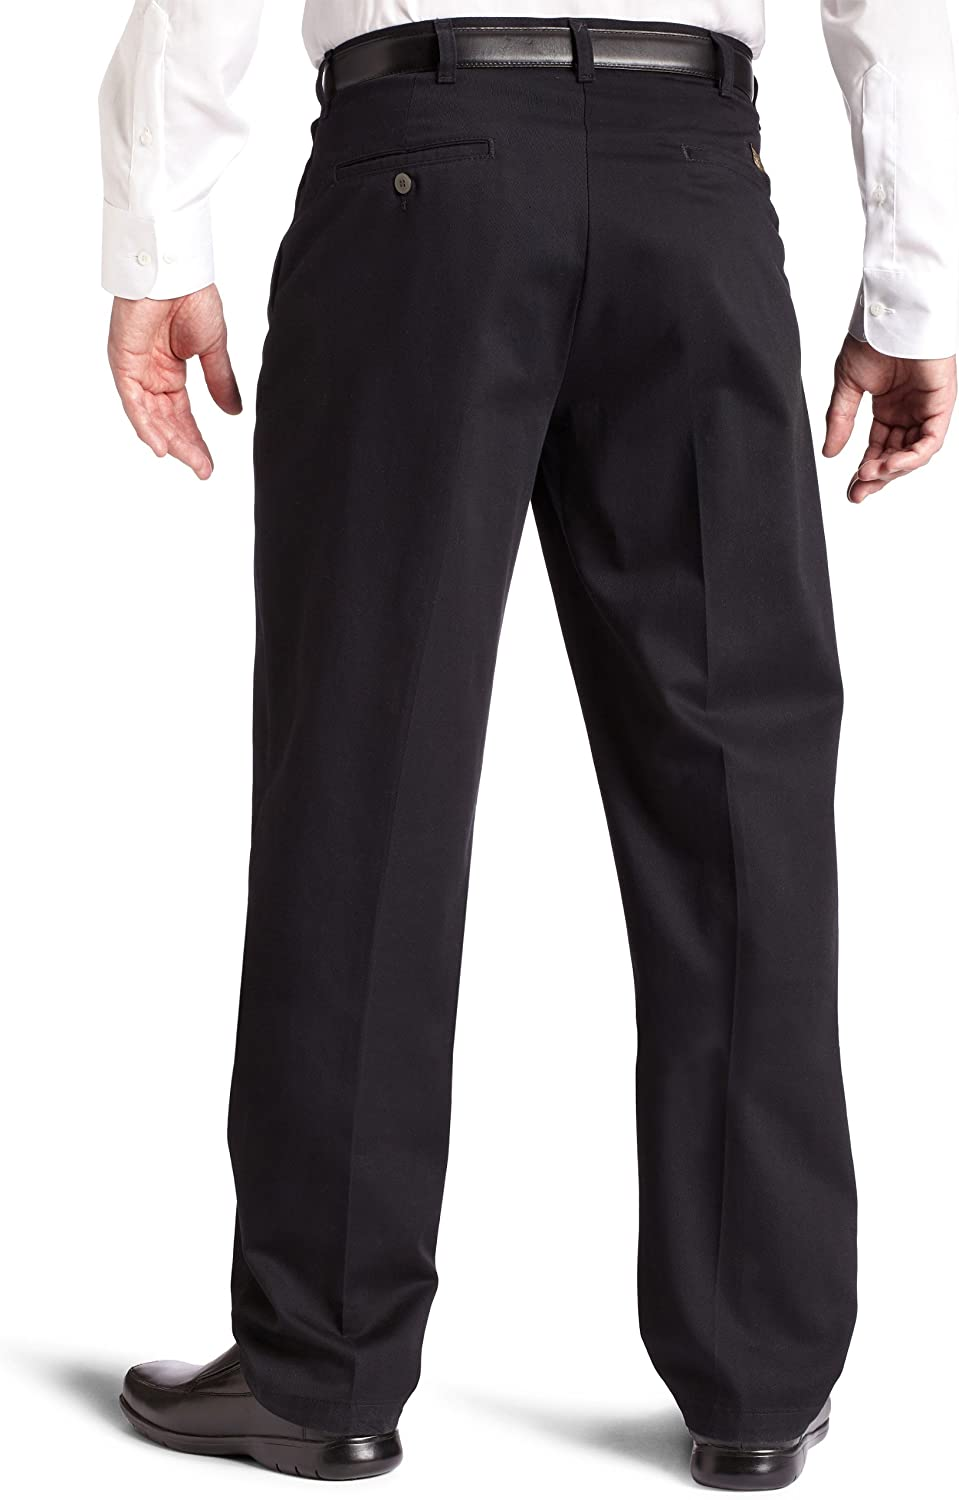 Lee Men's Big & Tall Big-Tall Stain Resistant Relaxed Fit Pleated Pant Black